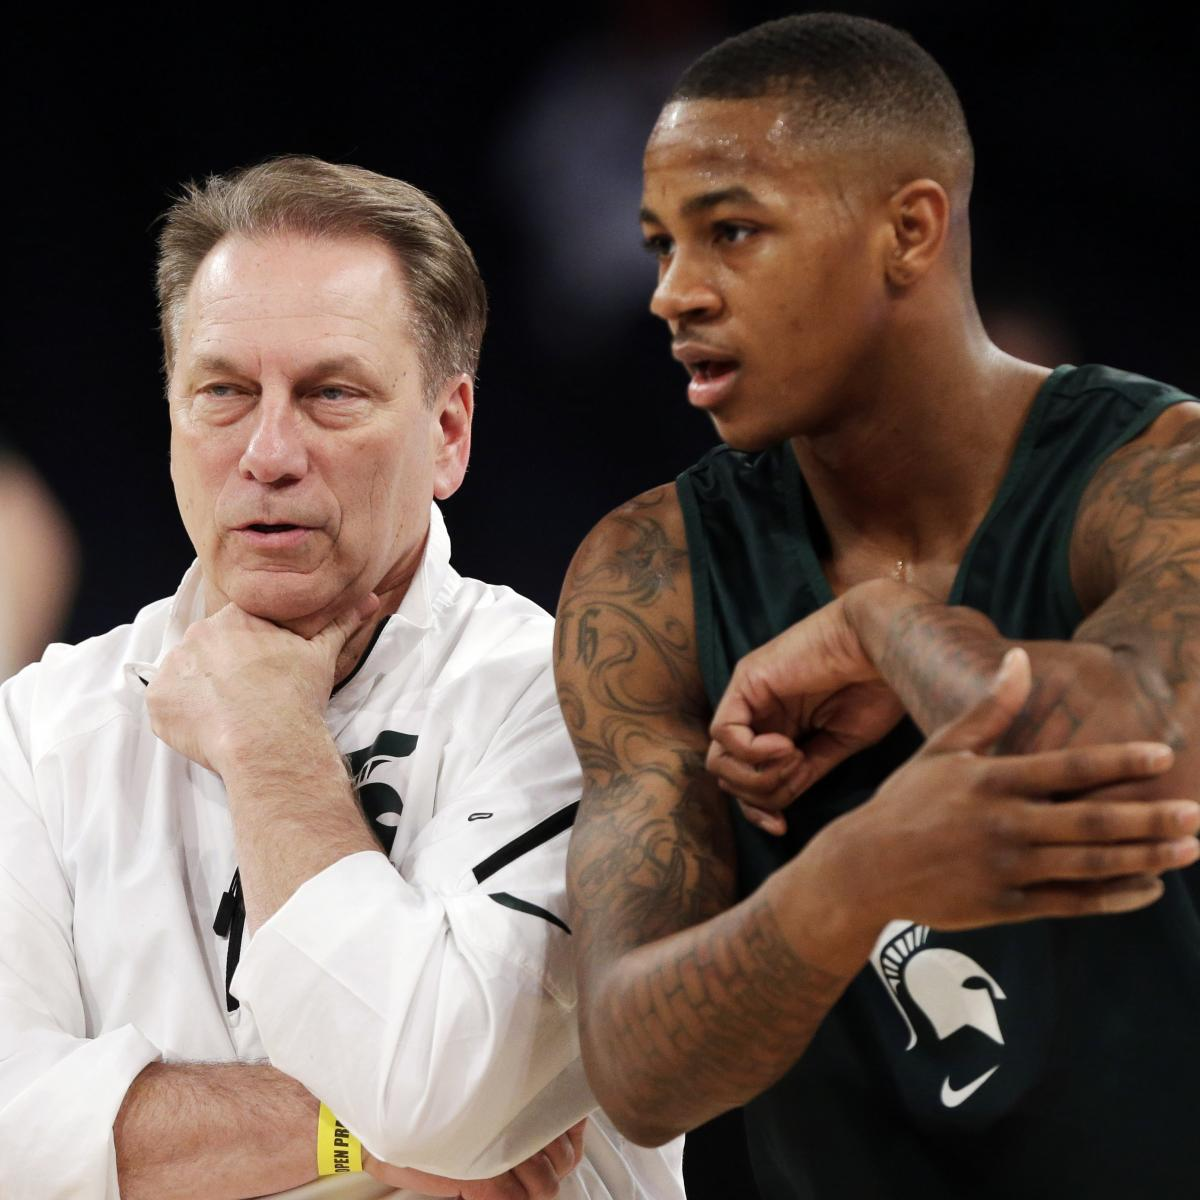 Ex-Michigan State PG Keith Appling Given 18 Months Probation After Heroin Arrest